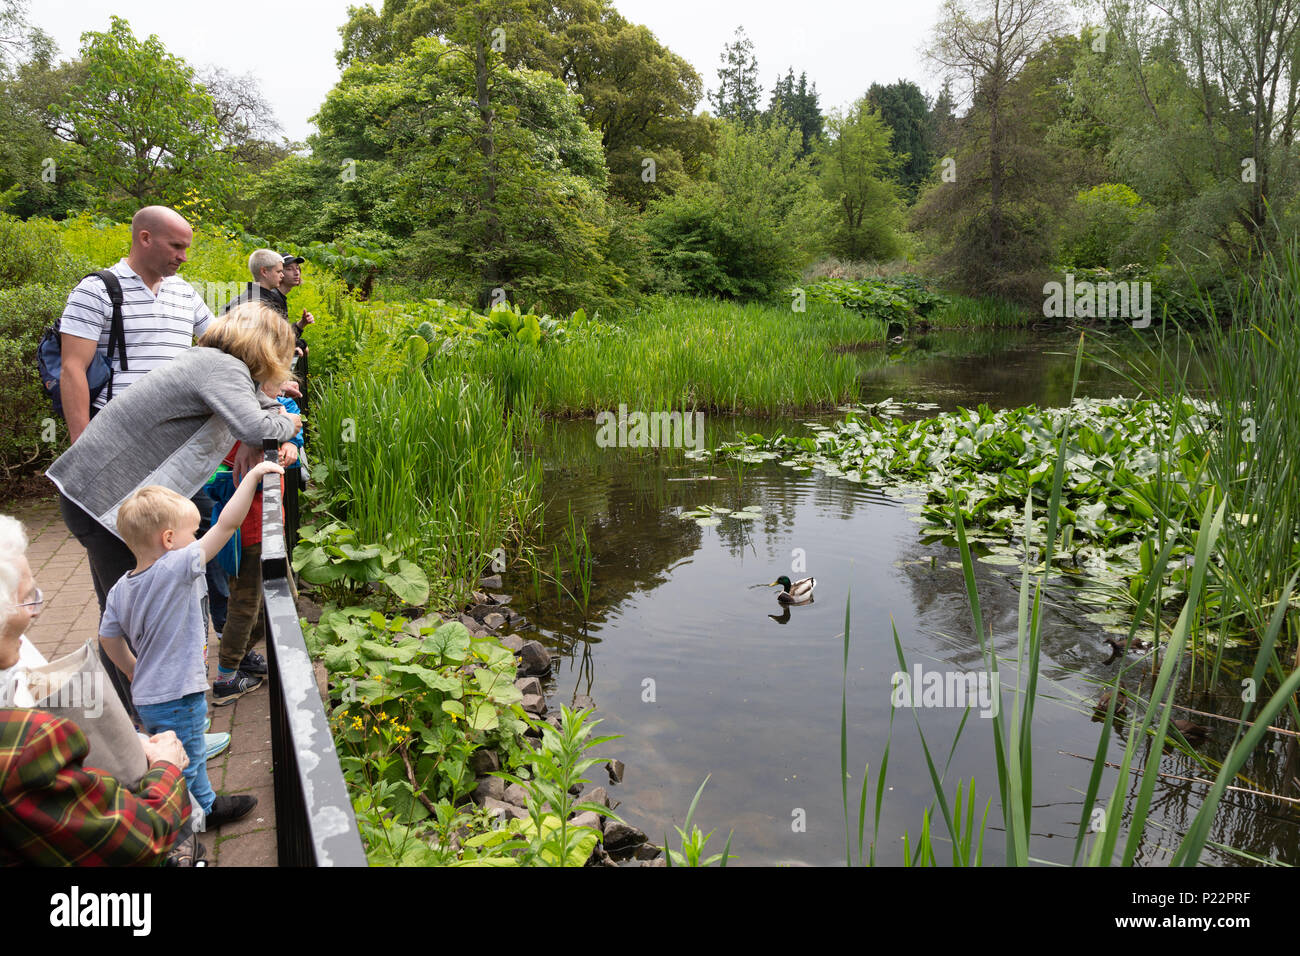 Adults and children at the ponds in the Royal Botanic Garden, Edinburgh, Scotland UK - Stock Image